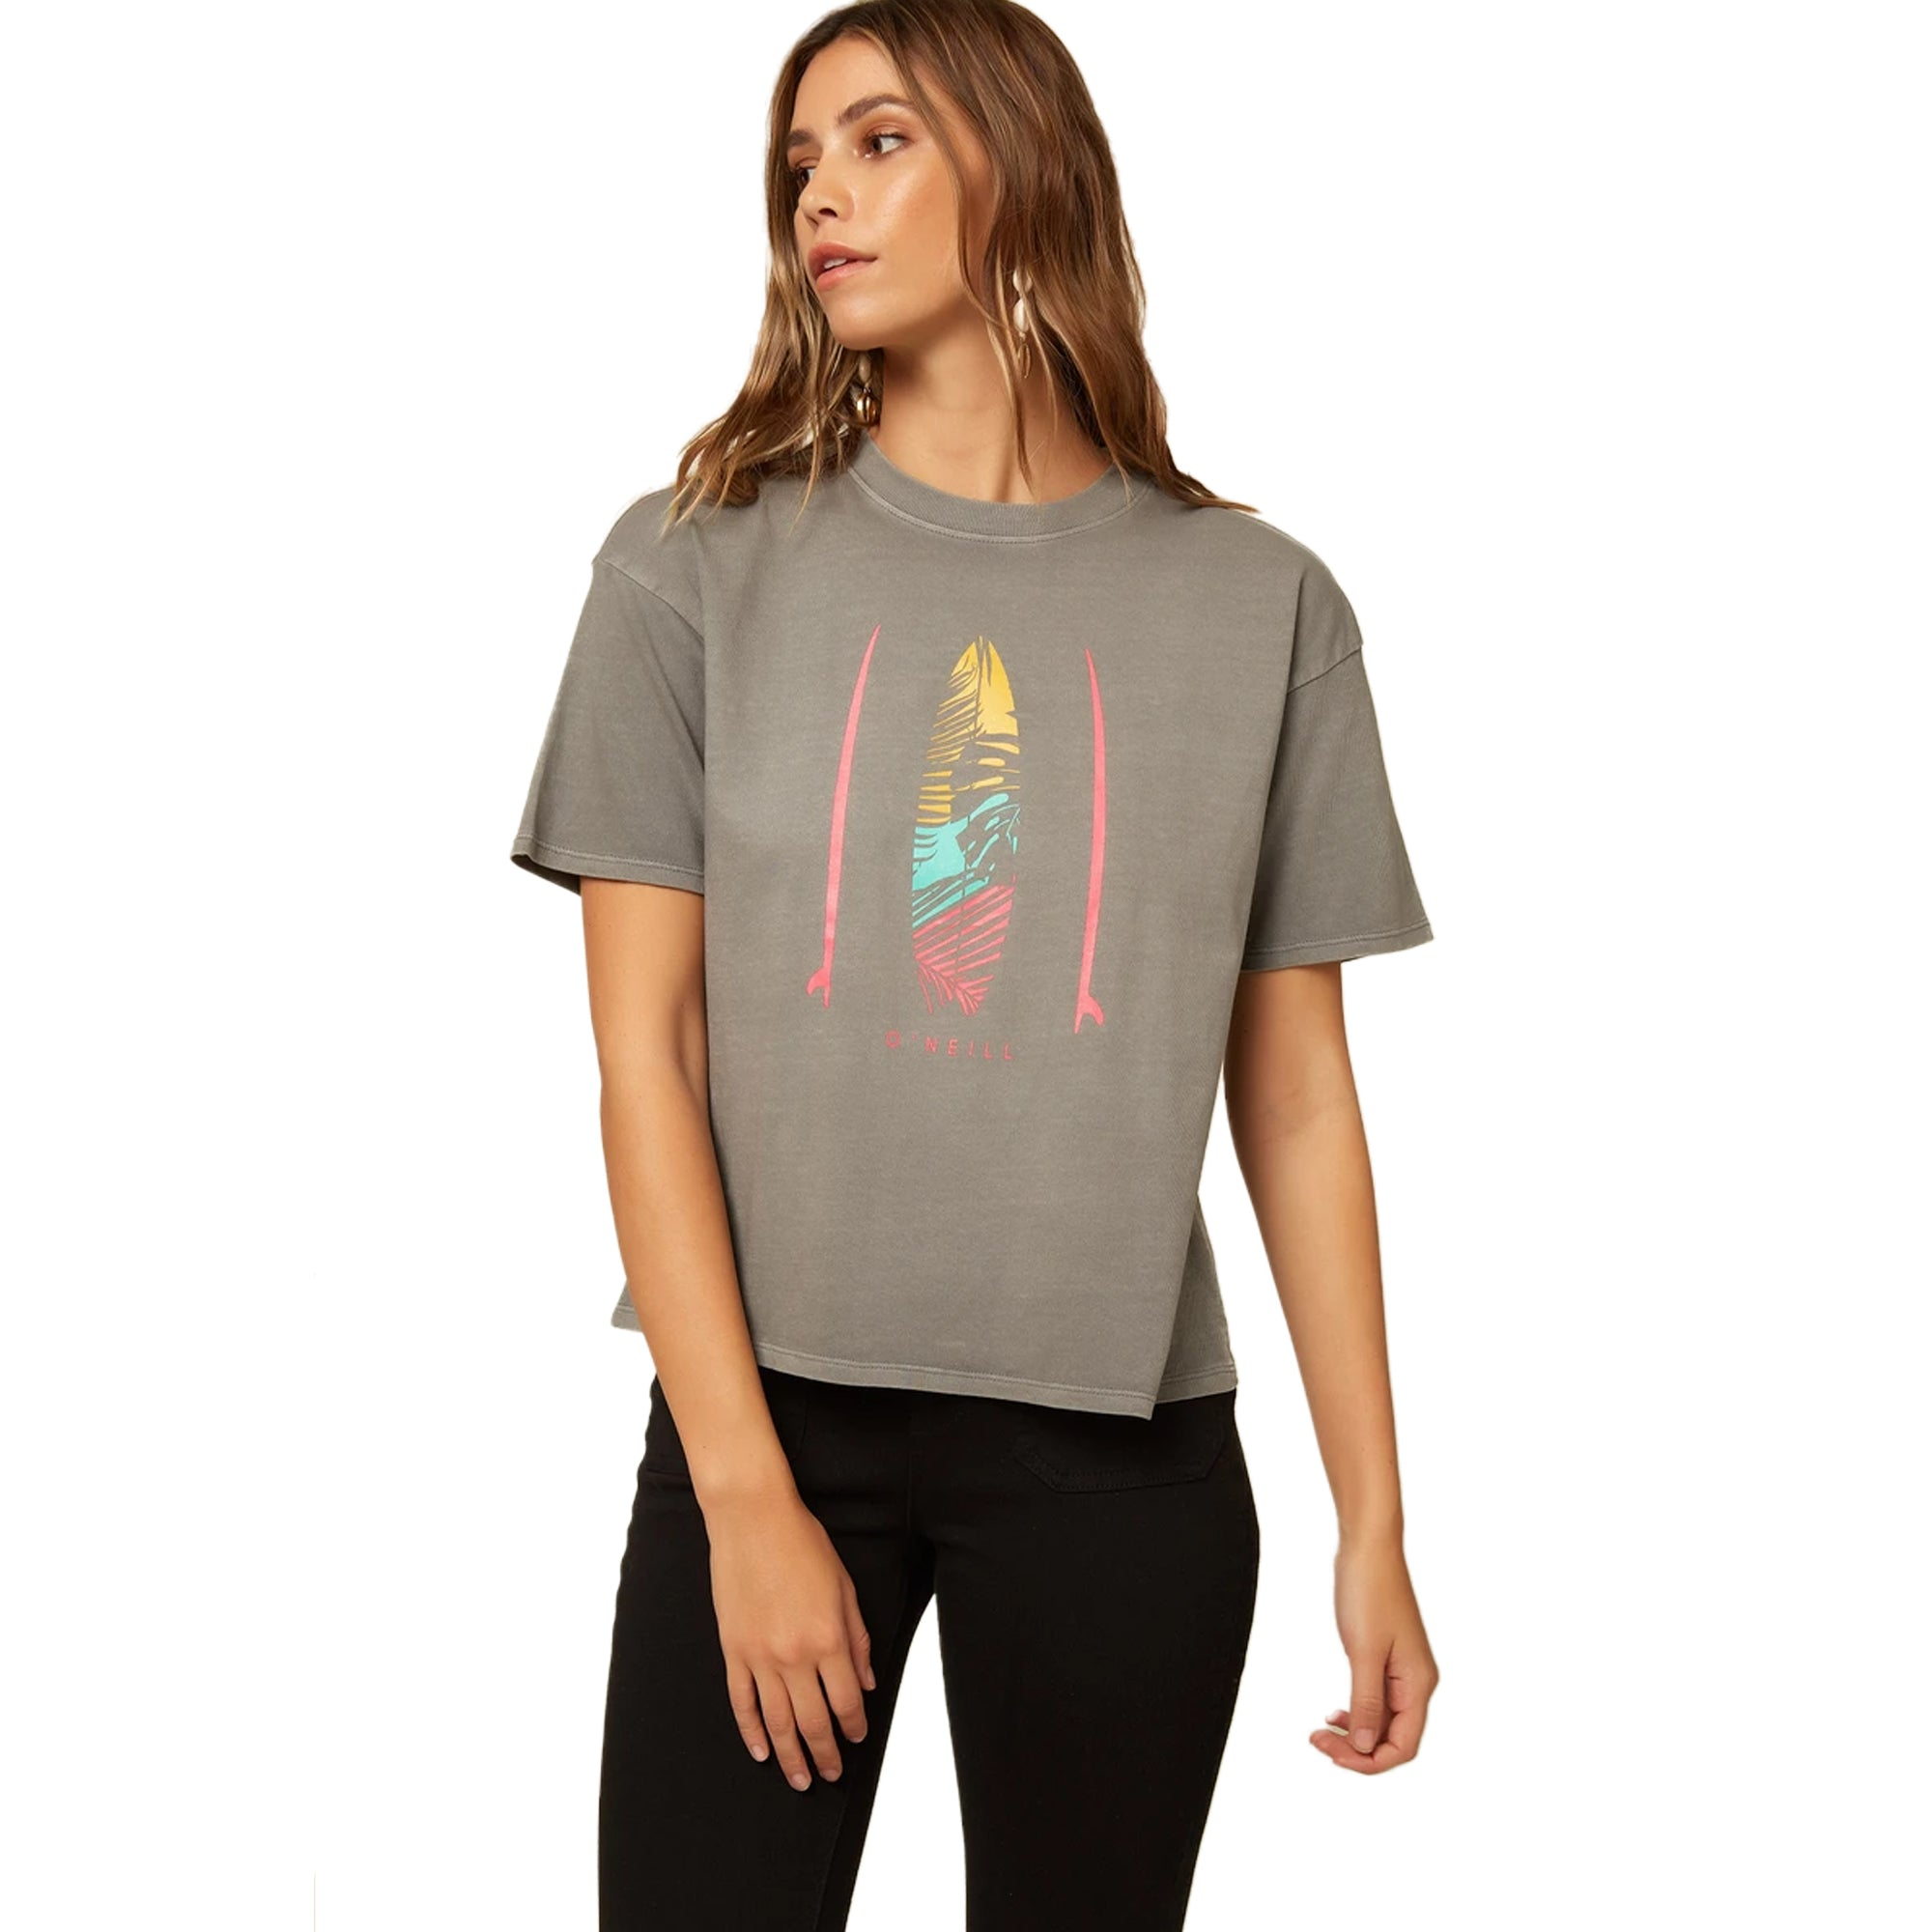 O'Neill Shaper Women's S/S T-Shirt